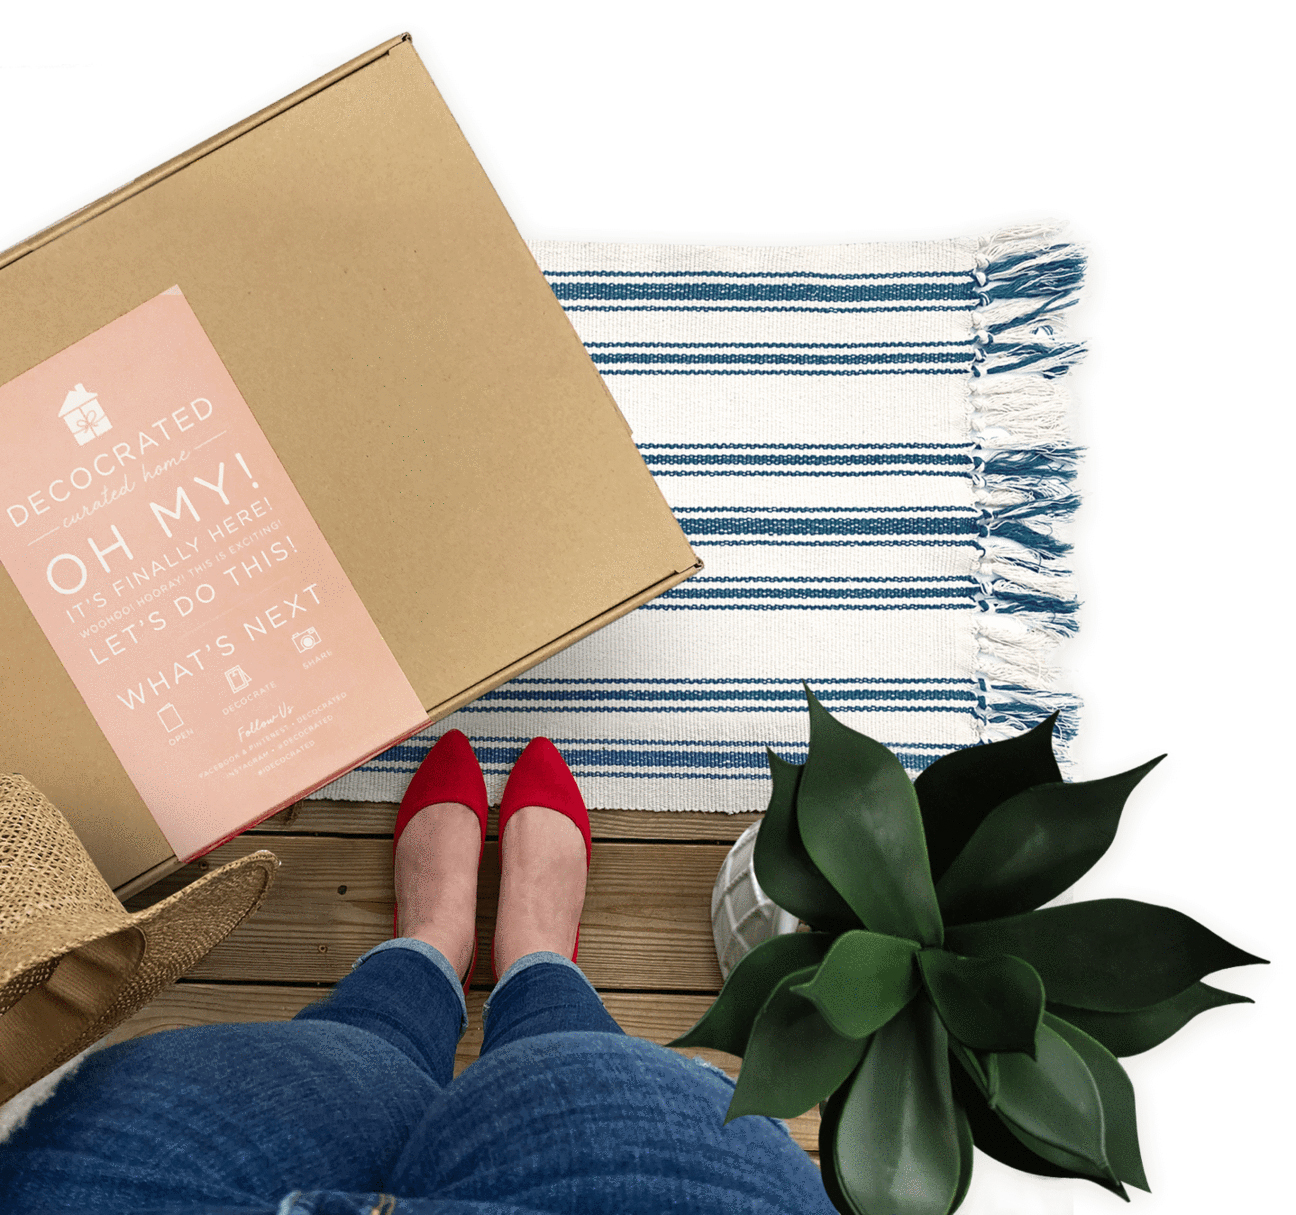 Best housewarming gifts - decocrated subscription box